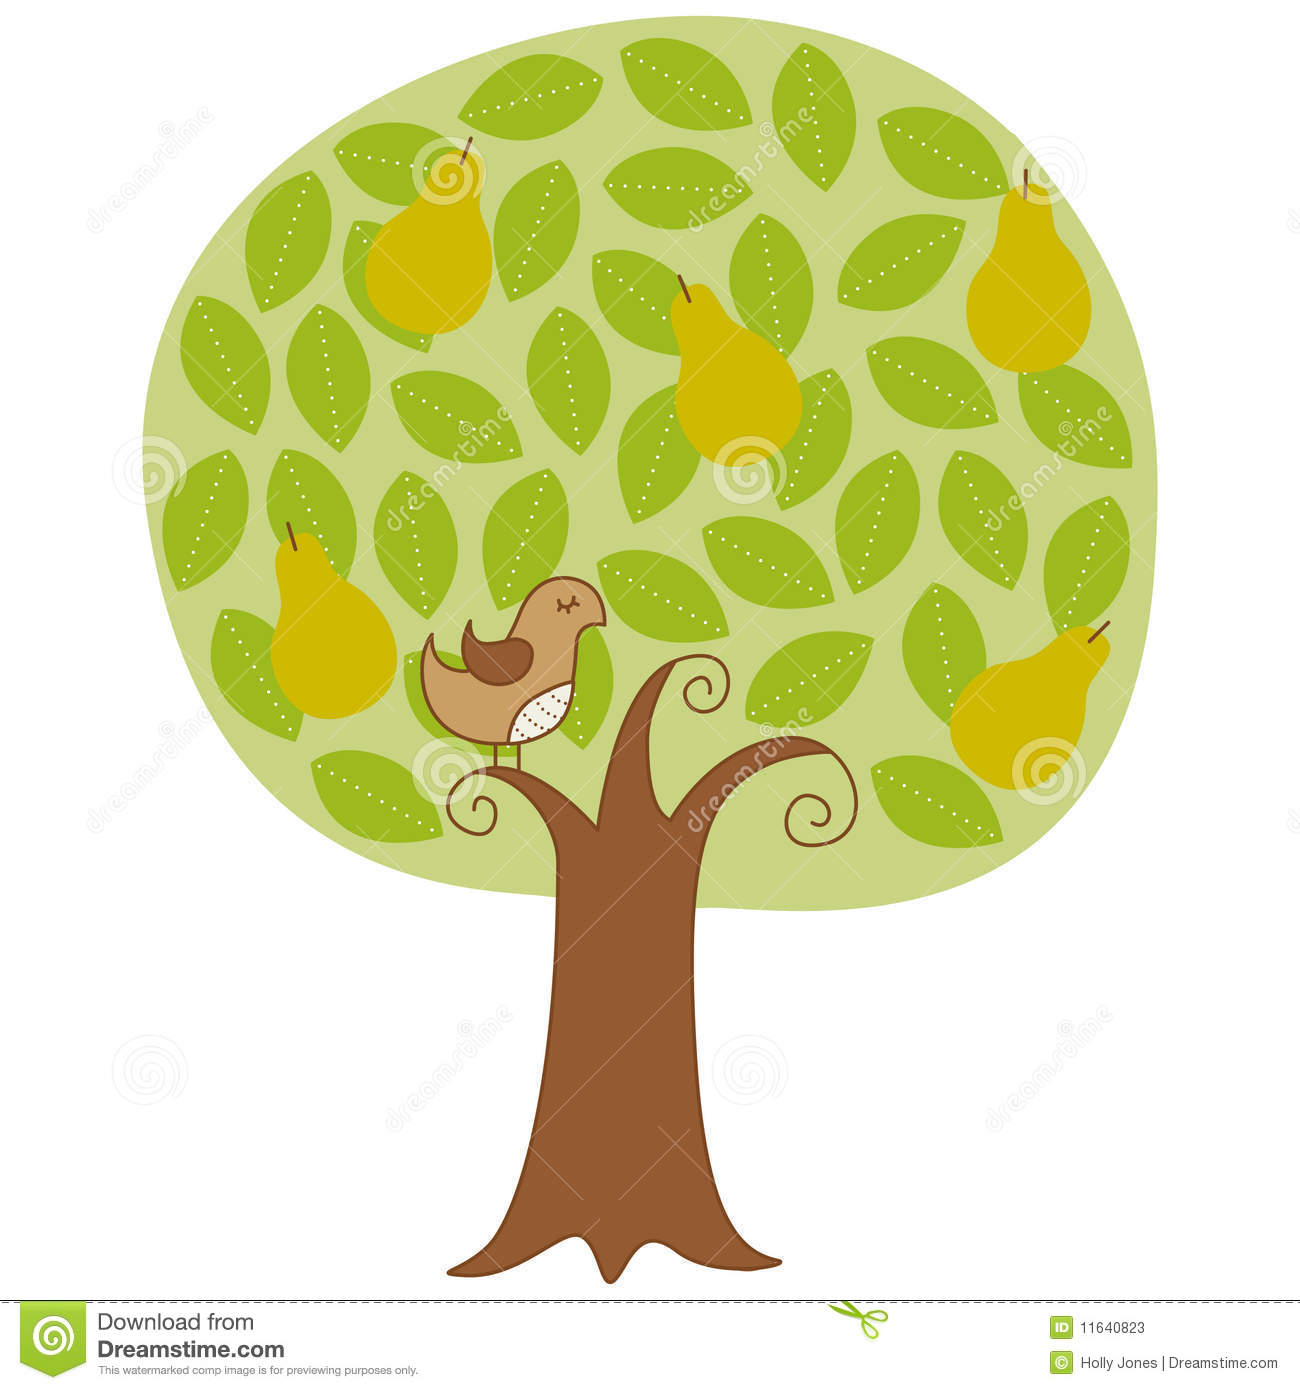 A partridge in a pear tree clipart clip free library Partridge In A Pear Tree Stock Photos - Image: 11640823 clip free library